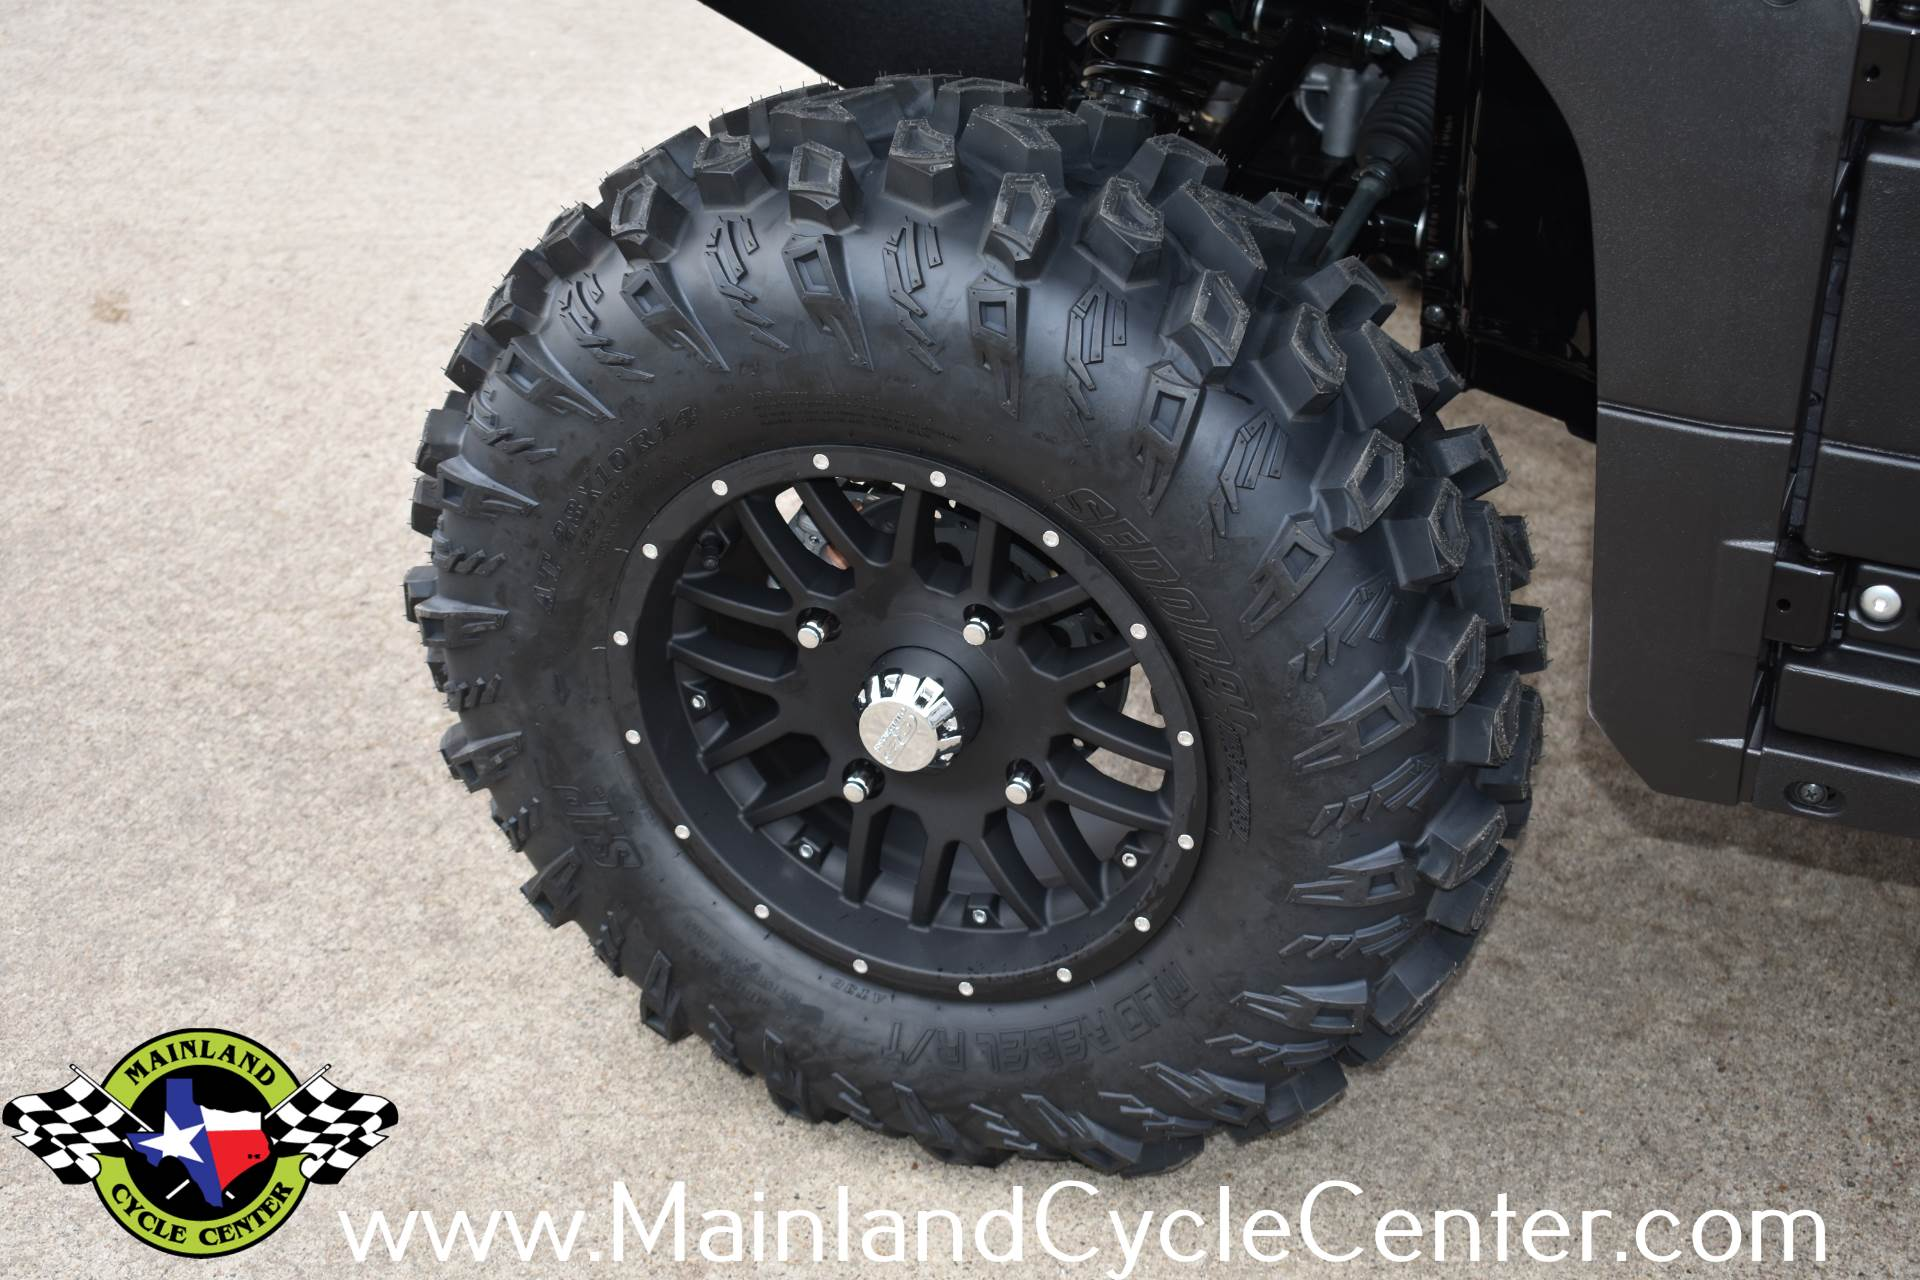 2019 Kawasaki Mule PRO-FXT EPS Camo in La Marque, Texas - Photo 27